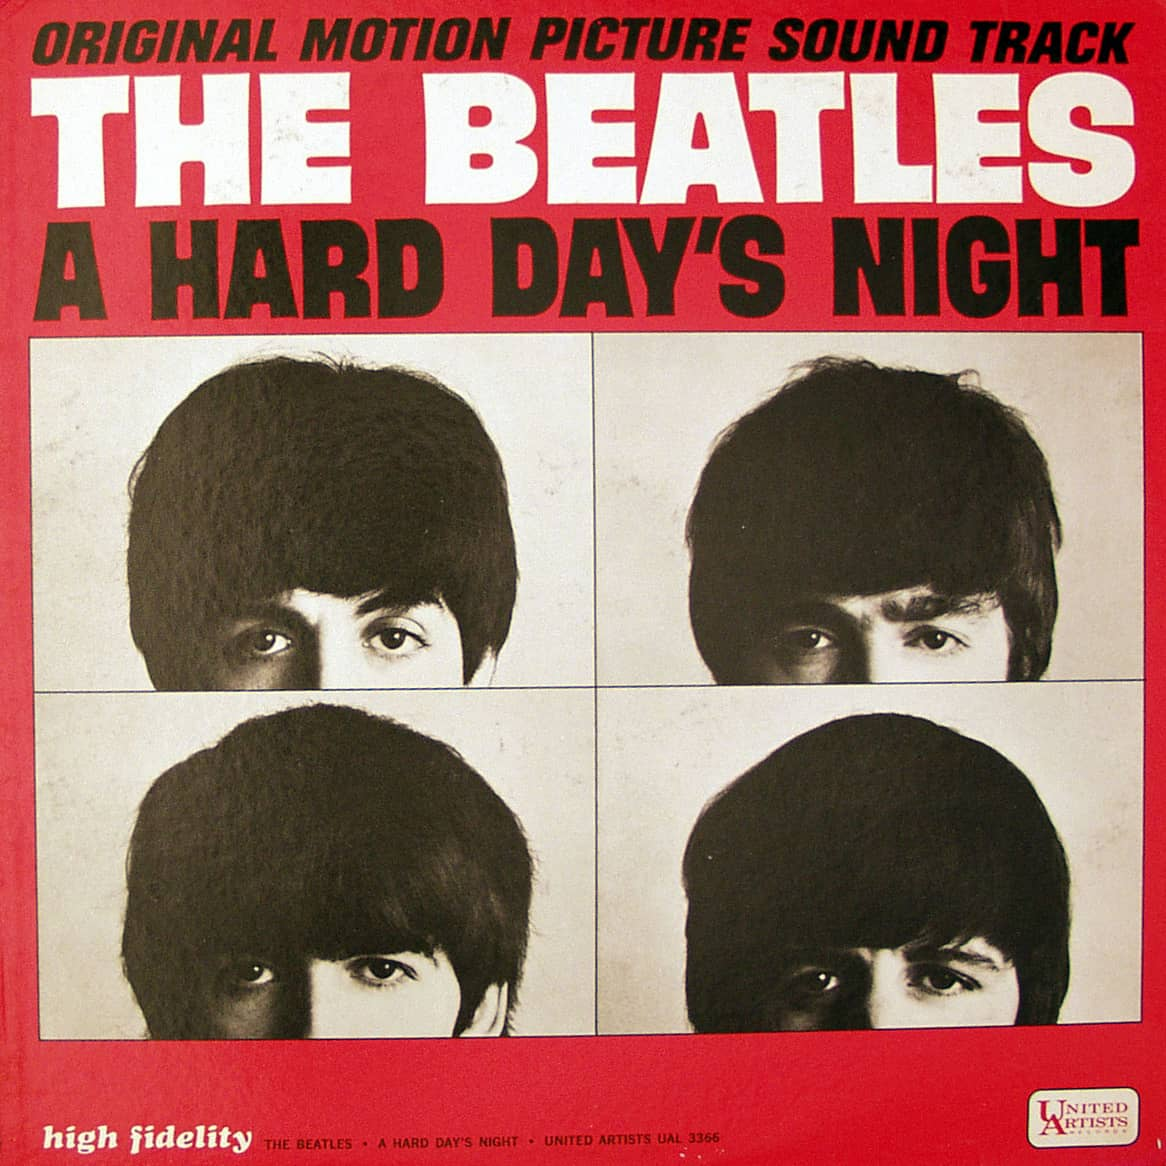 A Hard Day's Night album artwork - USA